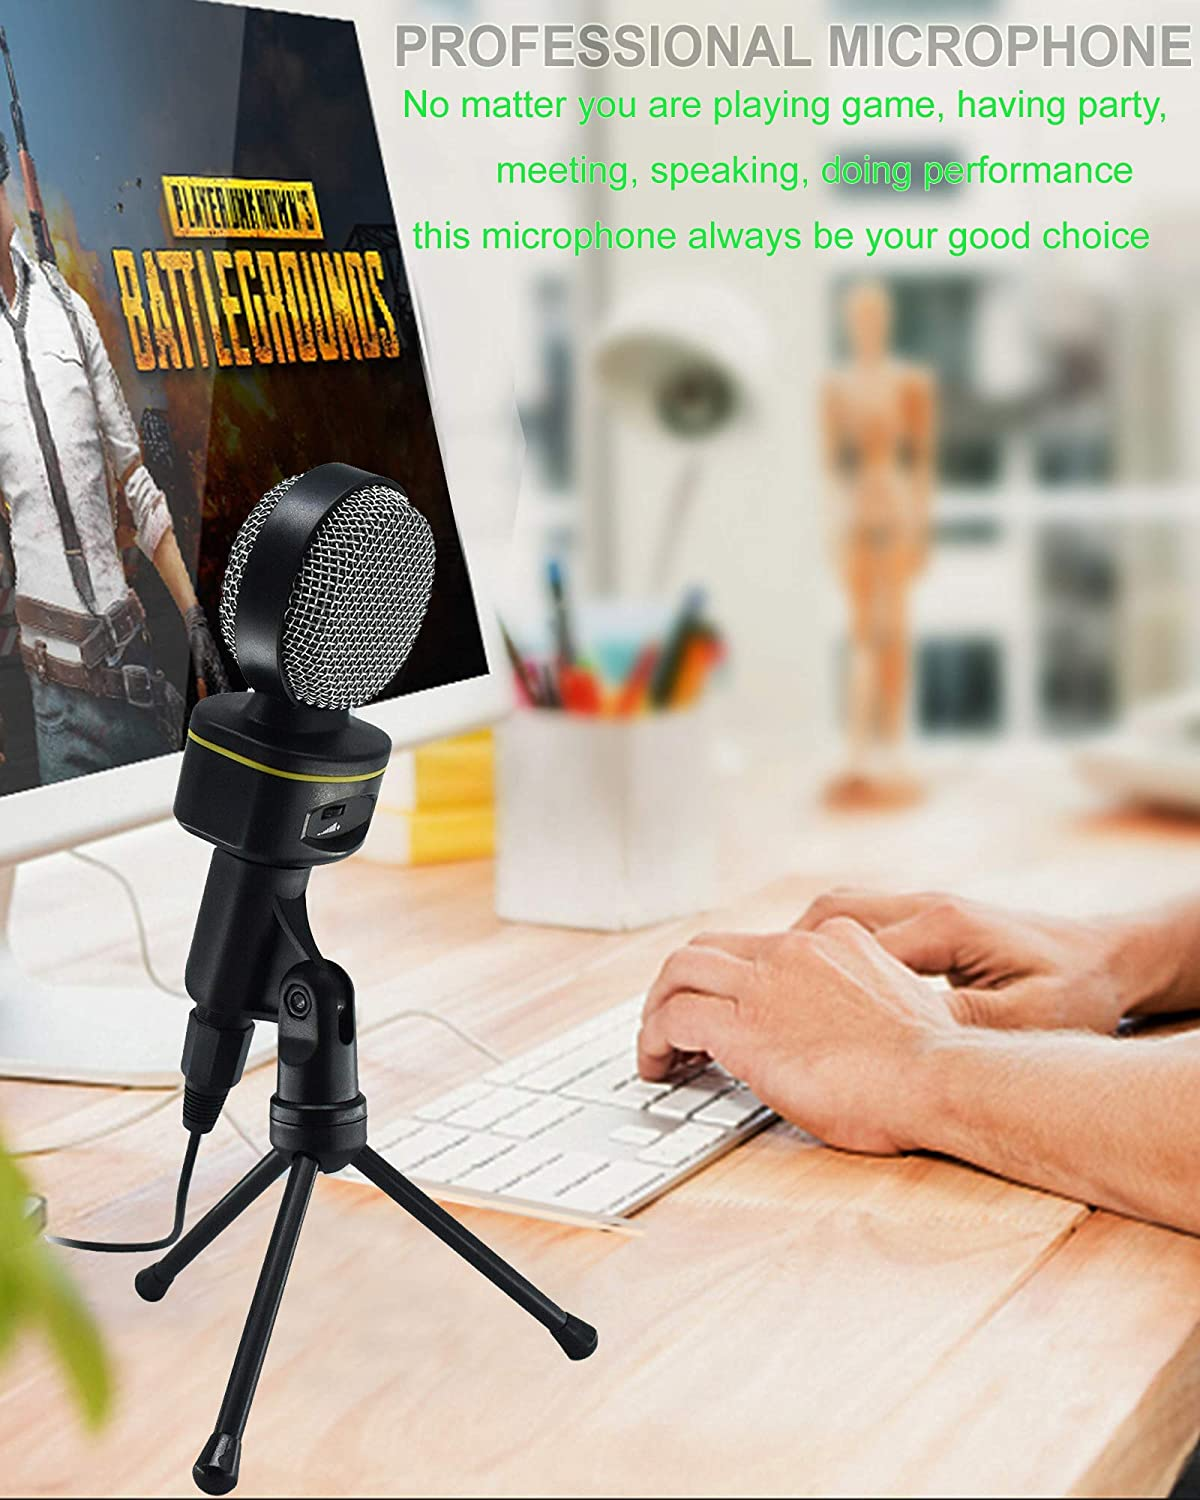 Condenser Microphone 3.5mm Jack Plug and Play Computer Microphone with Desktop Stand Ideal Reccording for YouTube Live Broadcast Business Teleconference Skype